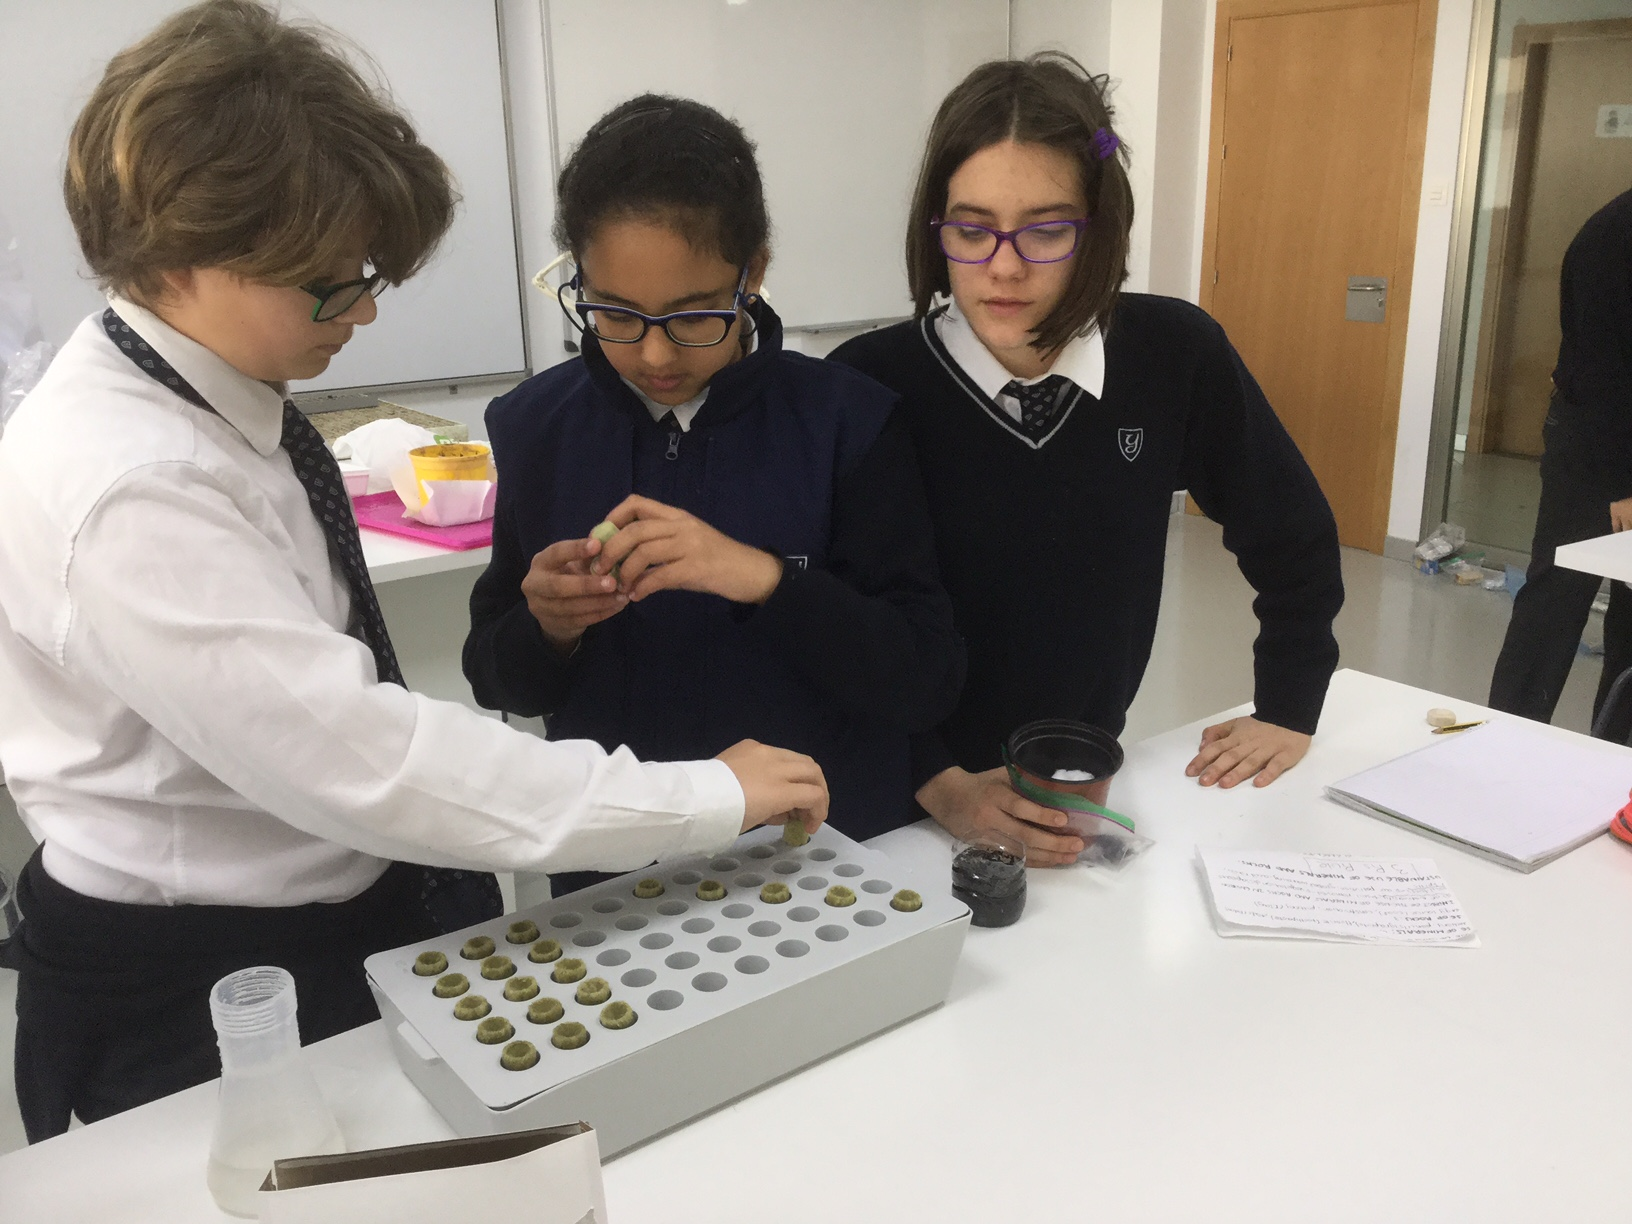 The seeds project in biology at yago School 1